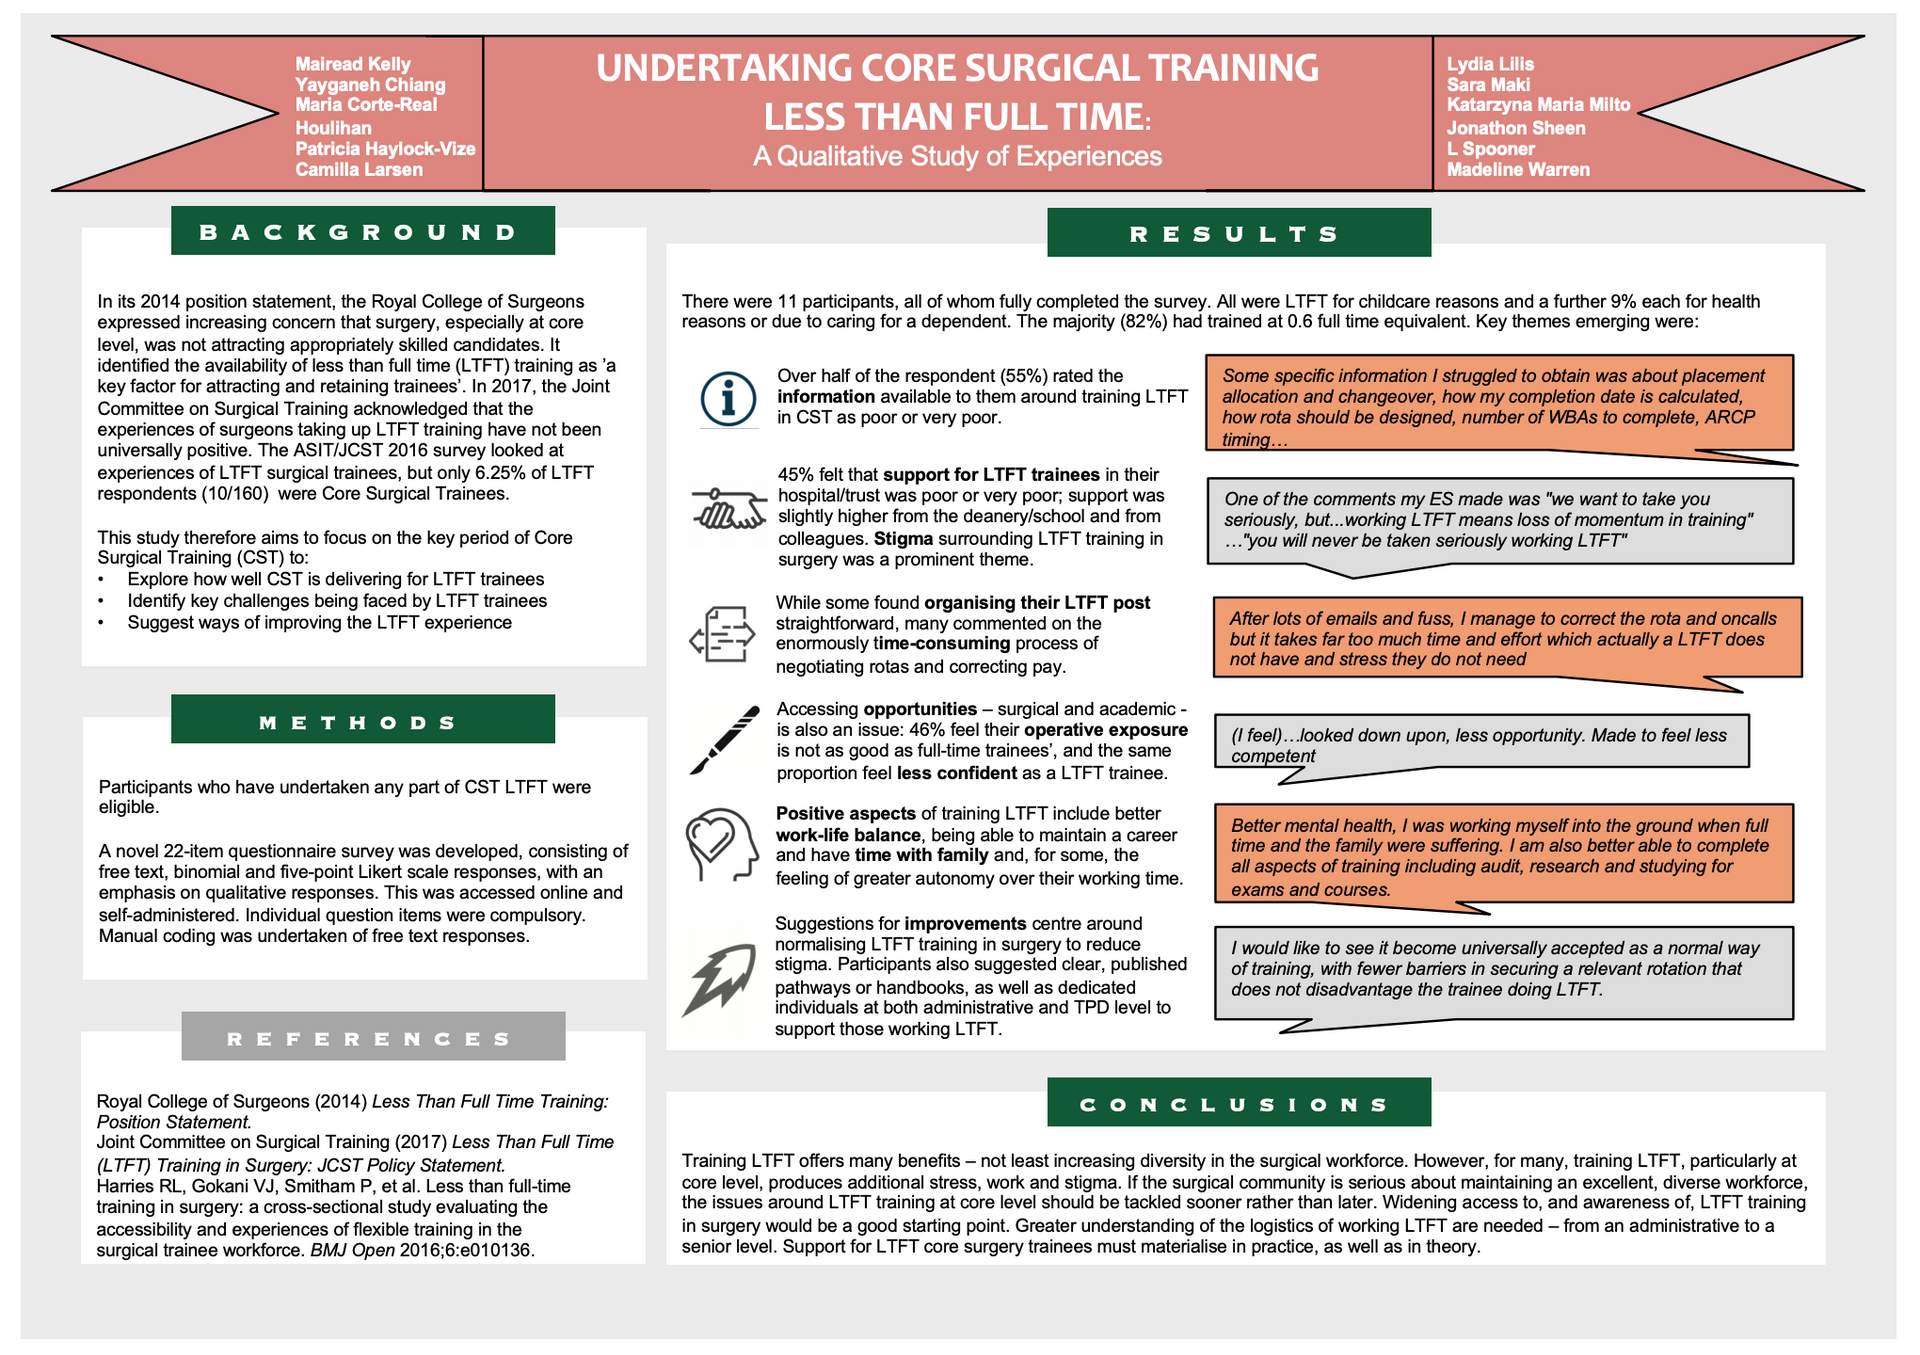 Undertaking Core Surgical Training Less Than Full Time: a qualitative study of experiences: Mairead Kelly